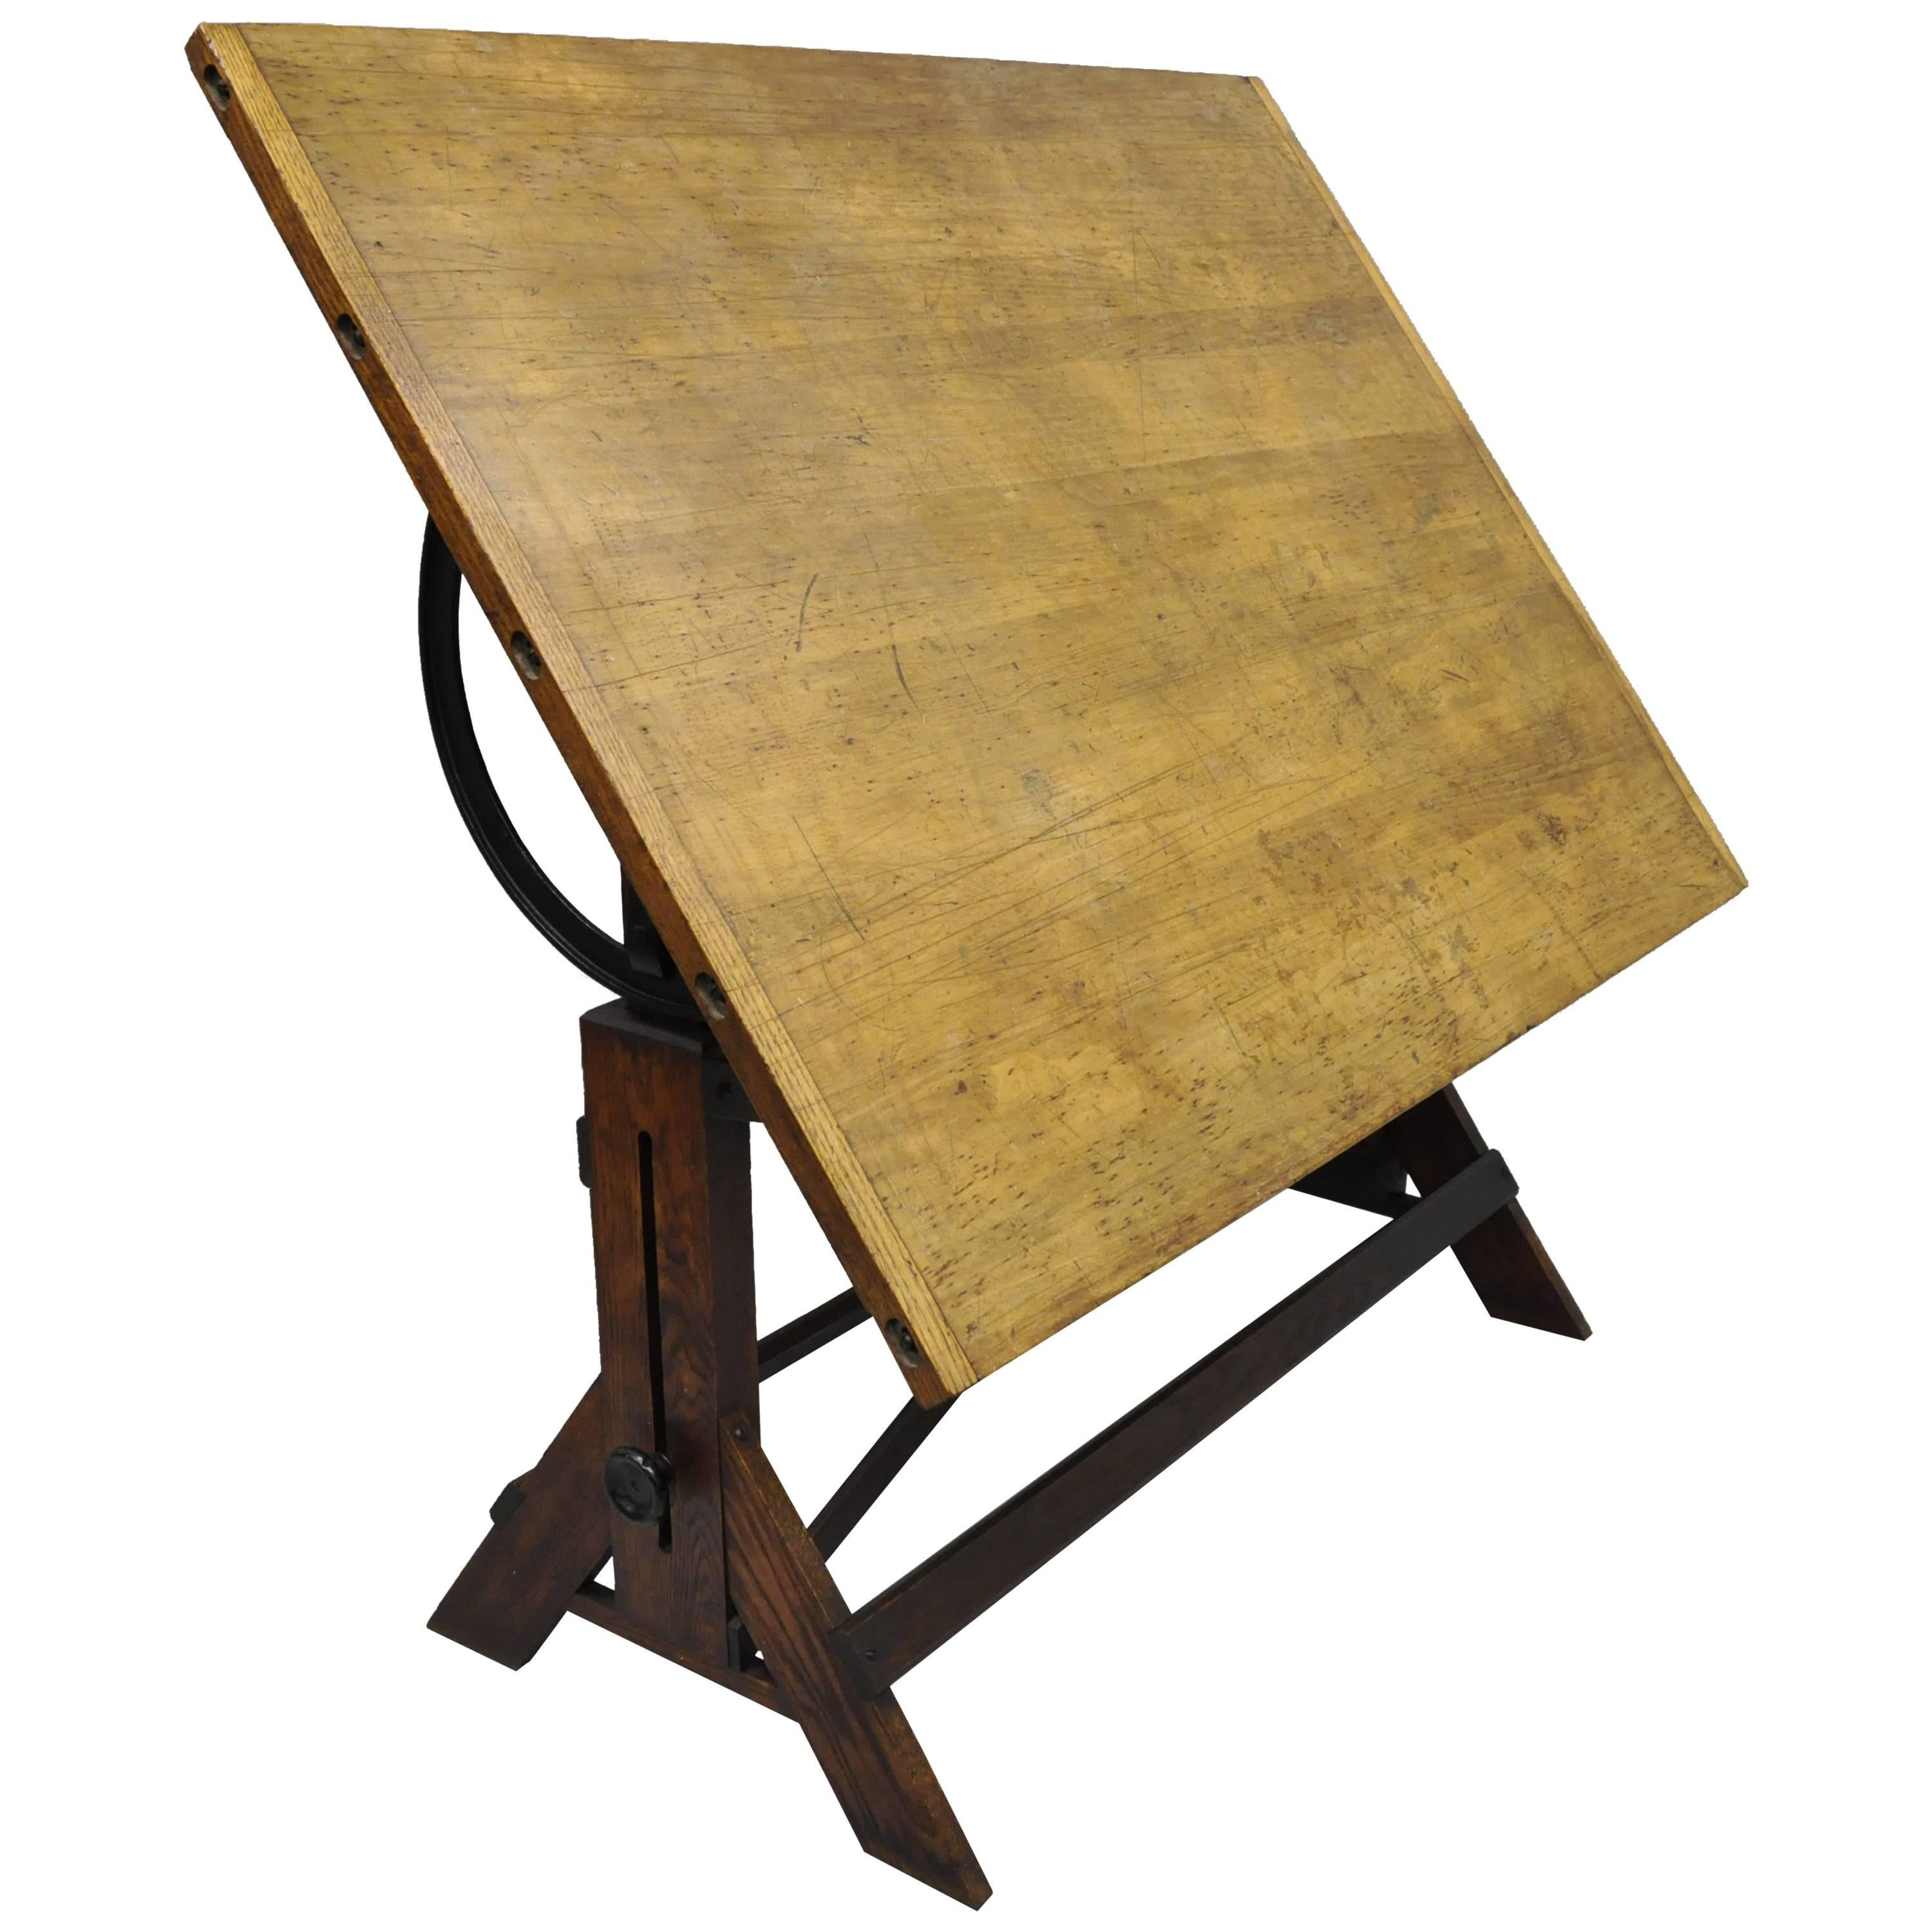 table antique inch shipping classic drafting crafts oak rustic free today studio product vintage sewing x wood overstock afad designs